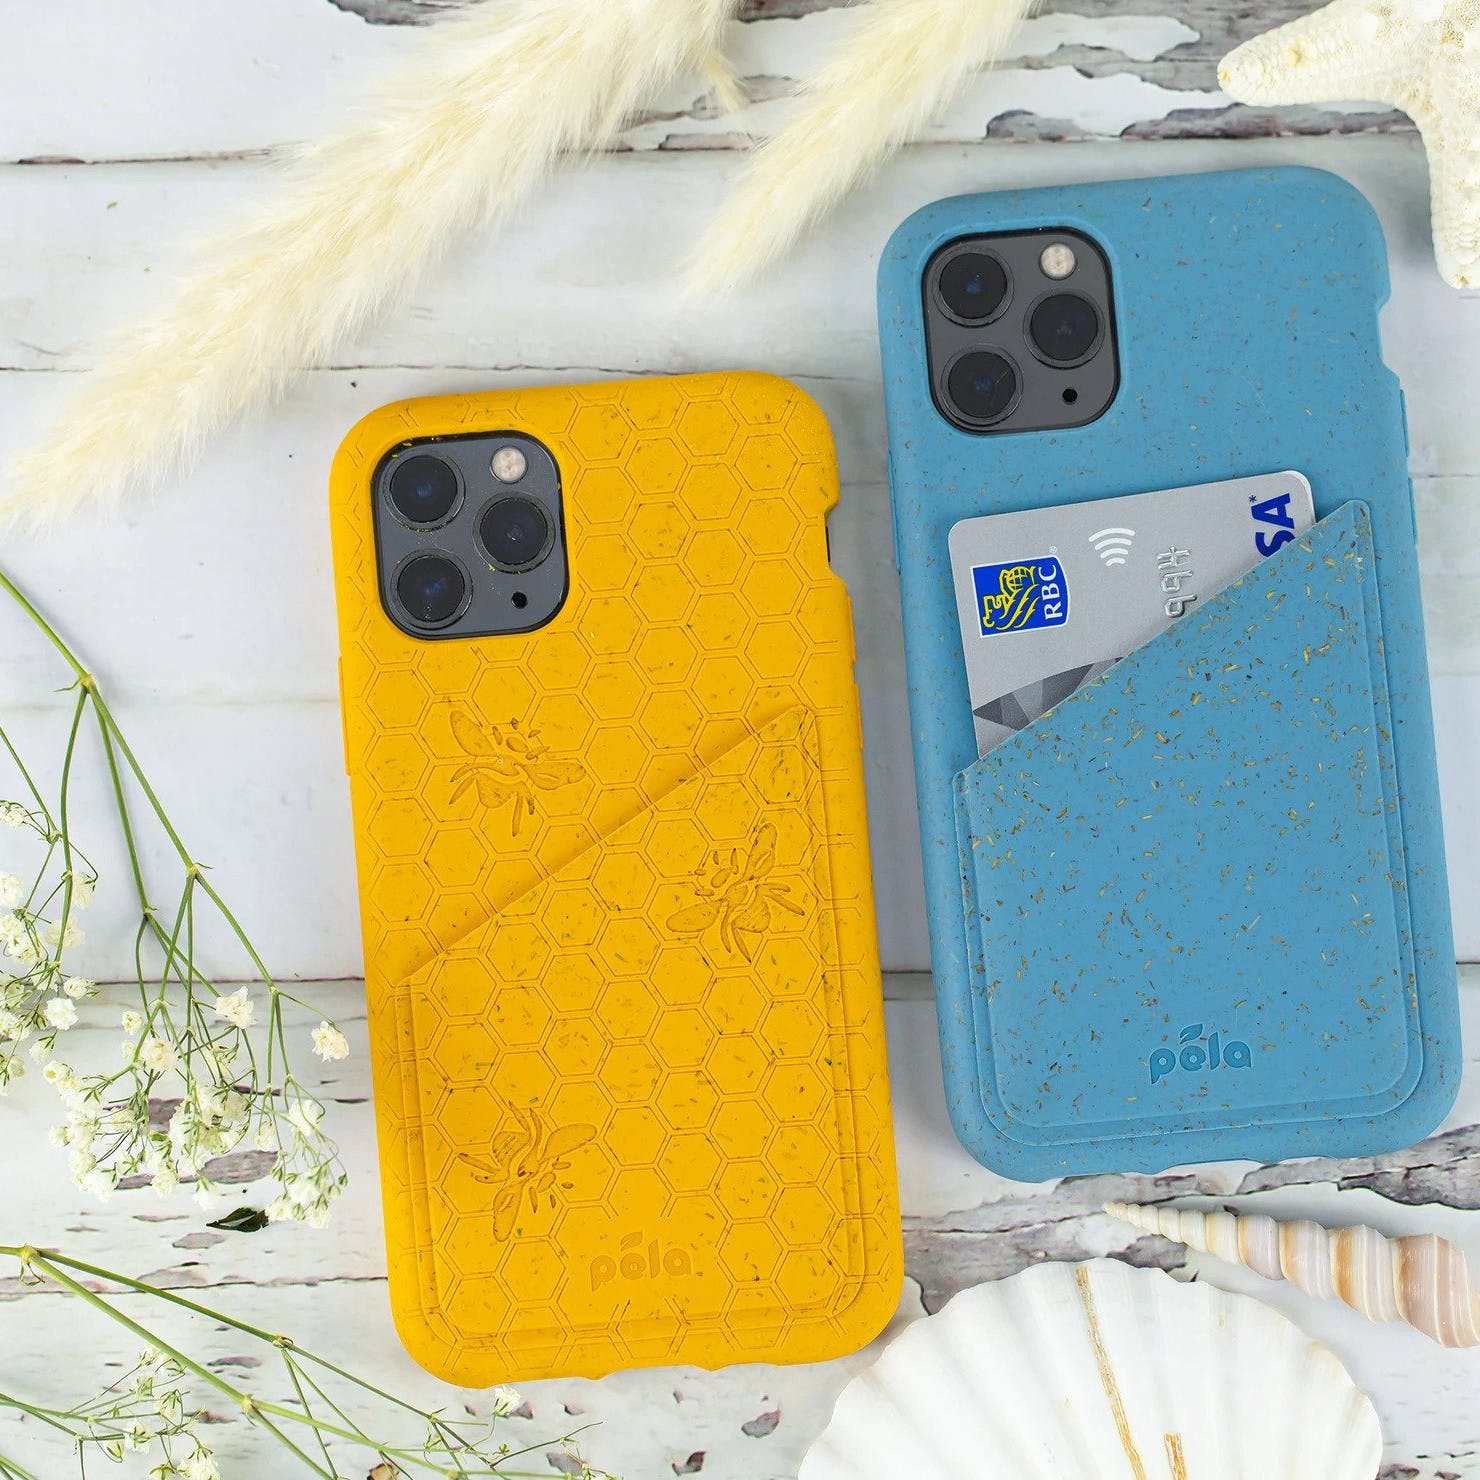 Biodegradable eco-friendly Pela wallet phone cases